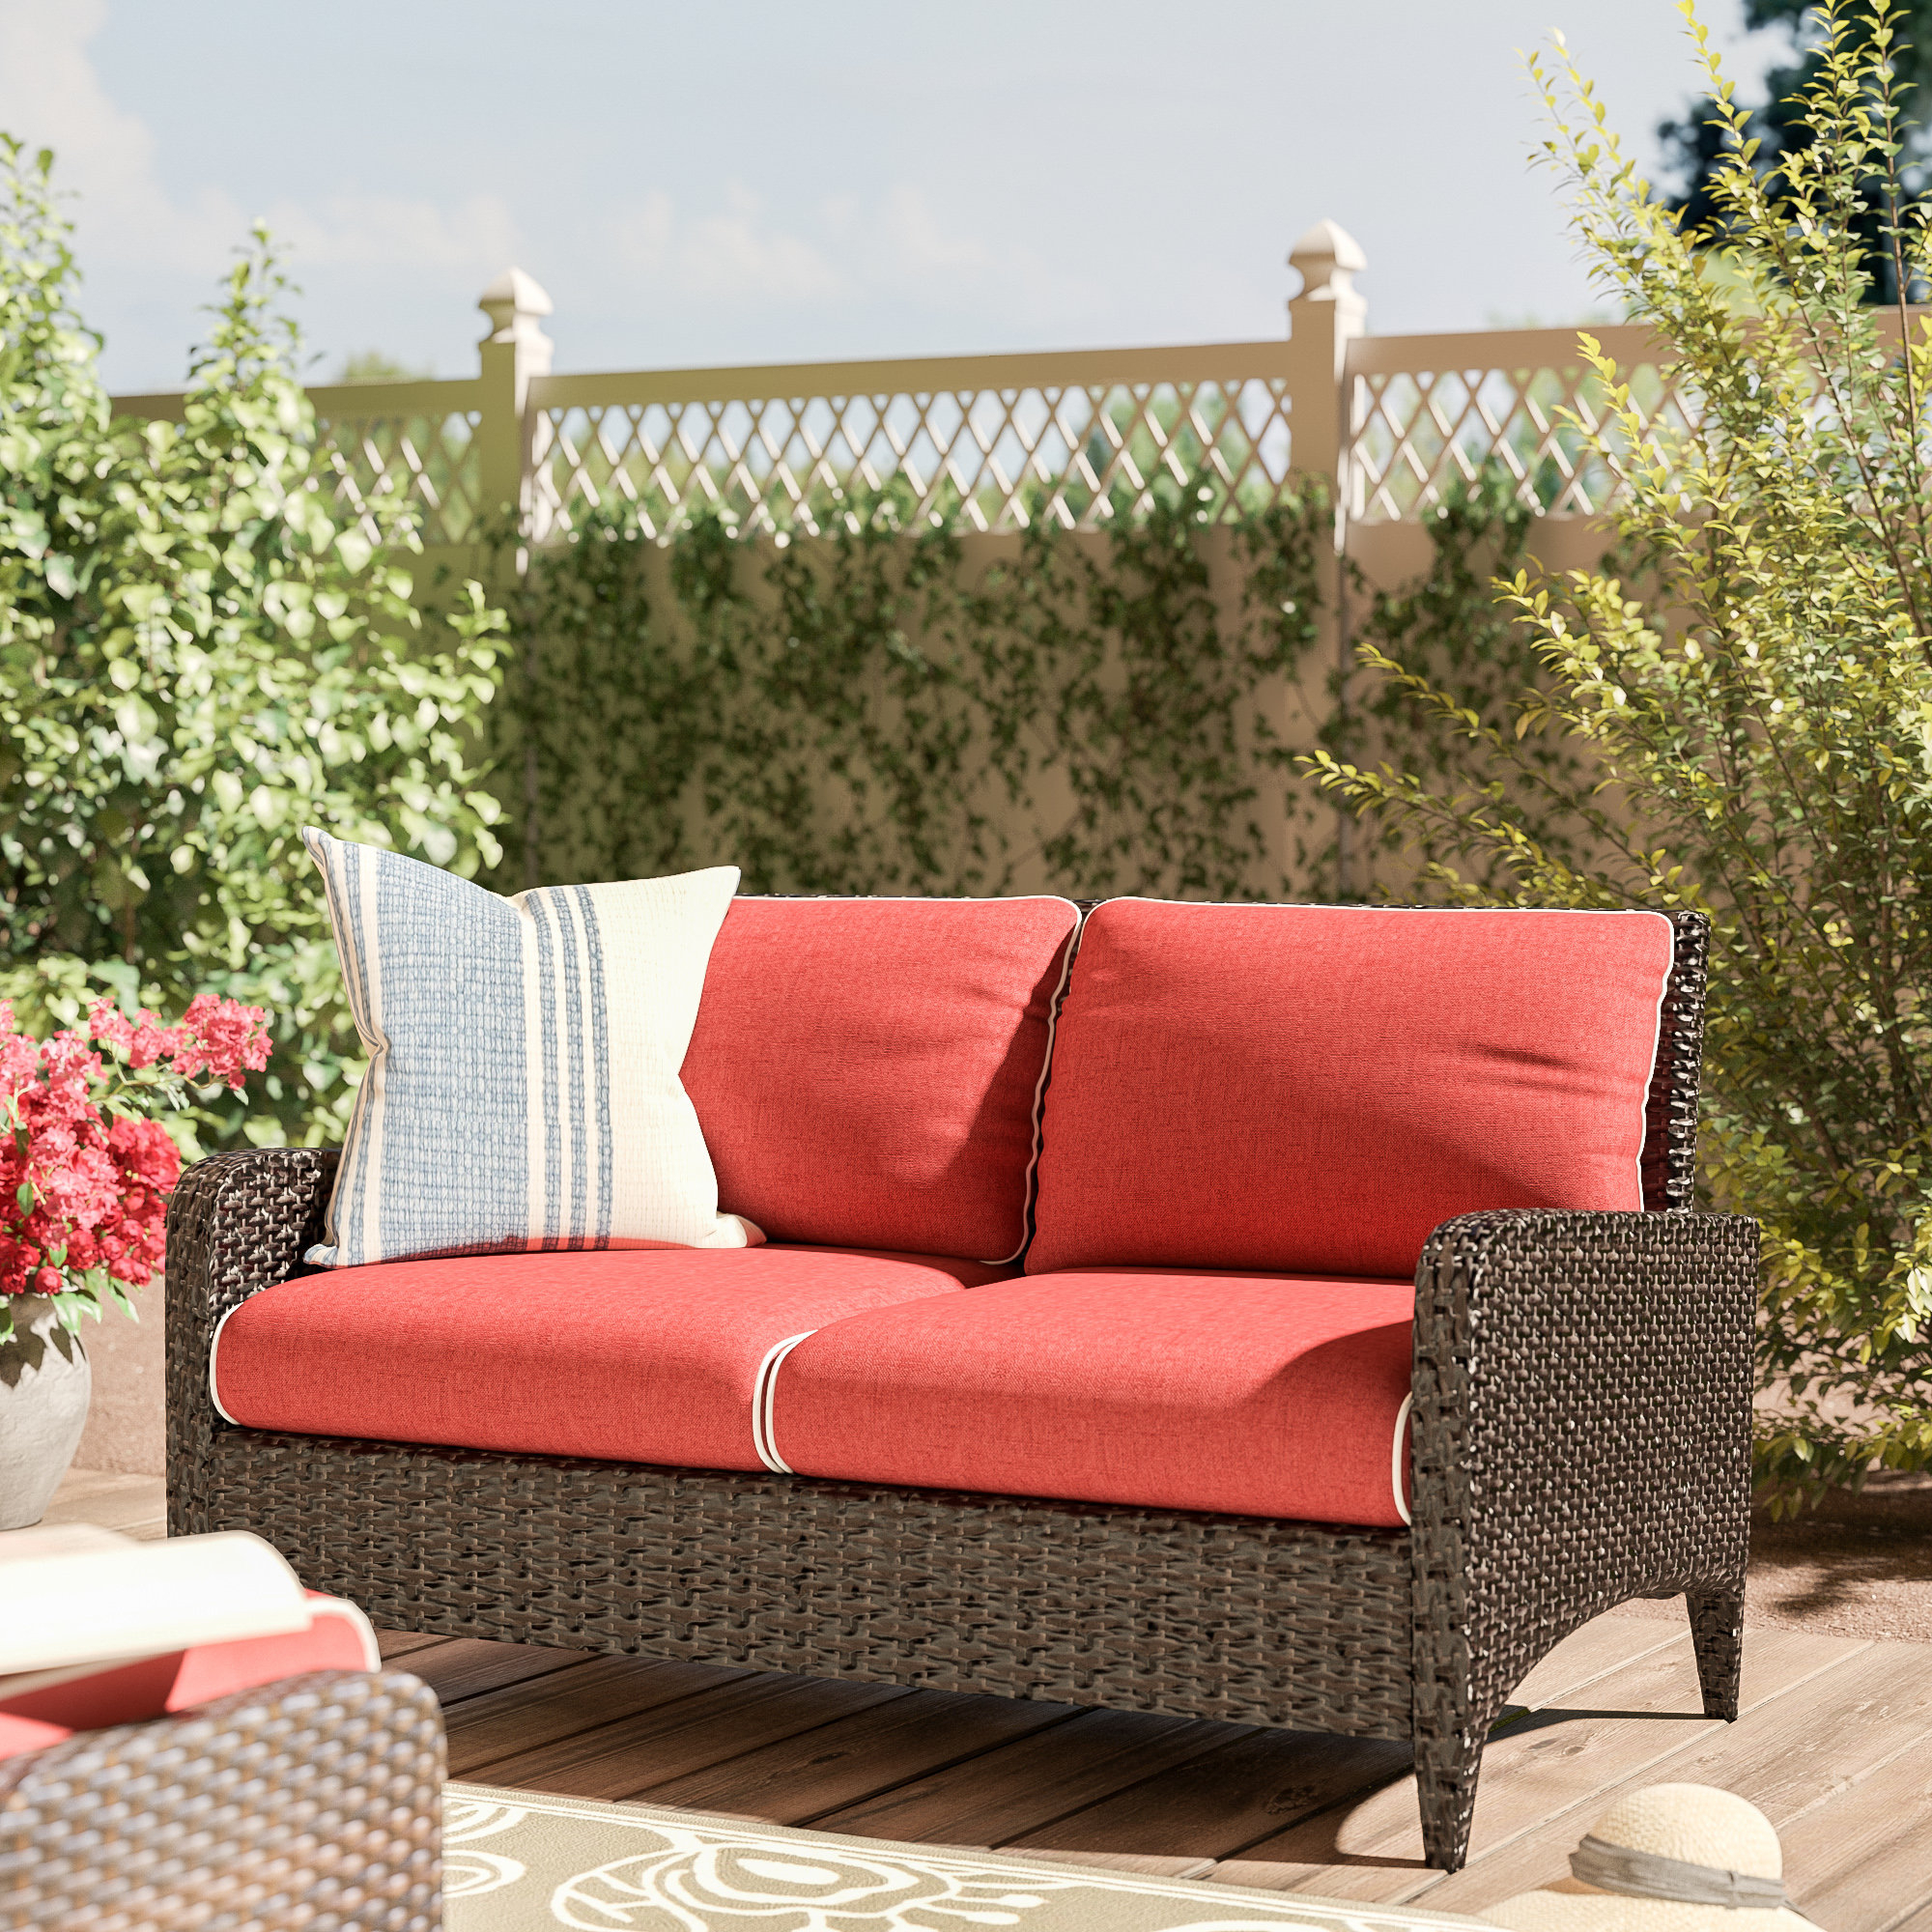 Fashionable Mosca Patio Loveseat With Cushions With Regard To Falmouth Loveseats With Cushions (View 6 of 20)